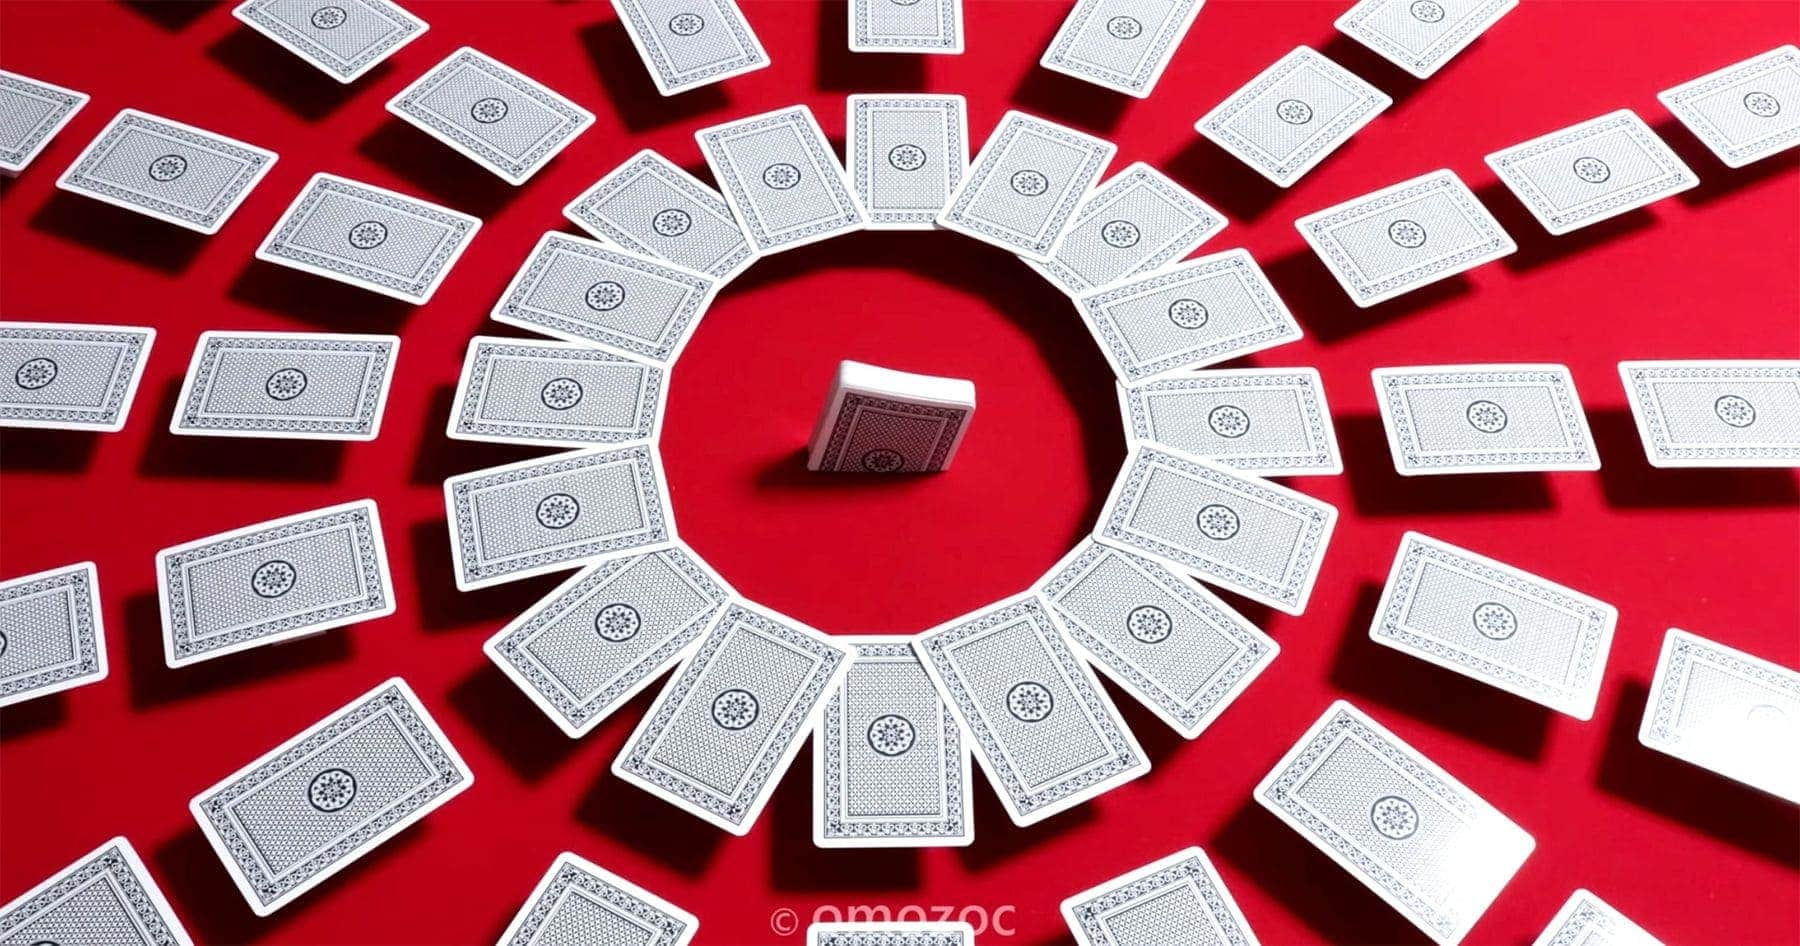 Legendary Poker Dealer – Stop-Motion-Cardistry | Awesome | Was is hier eigentlich los?